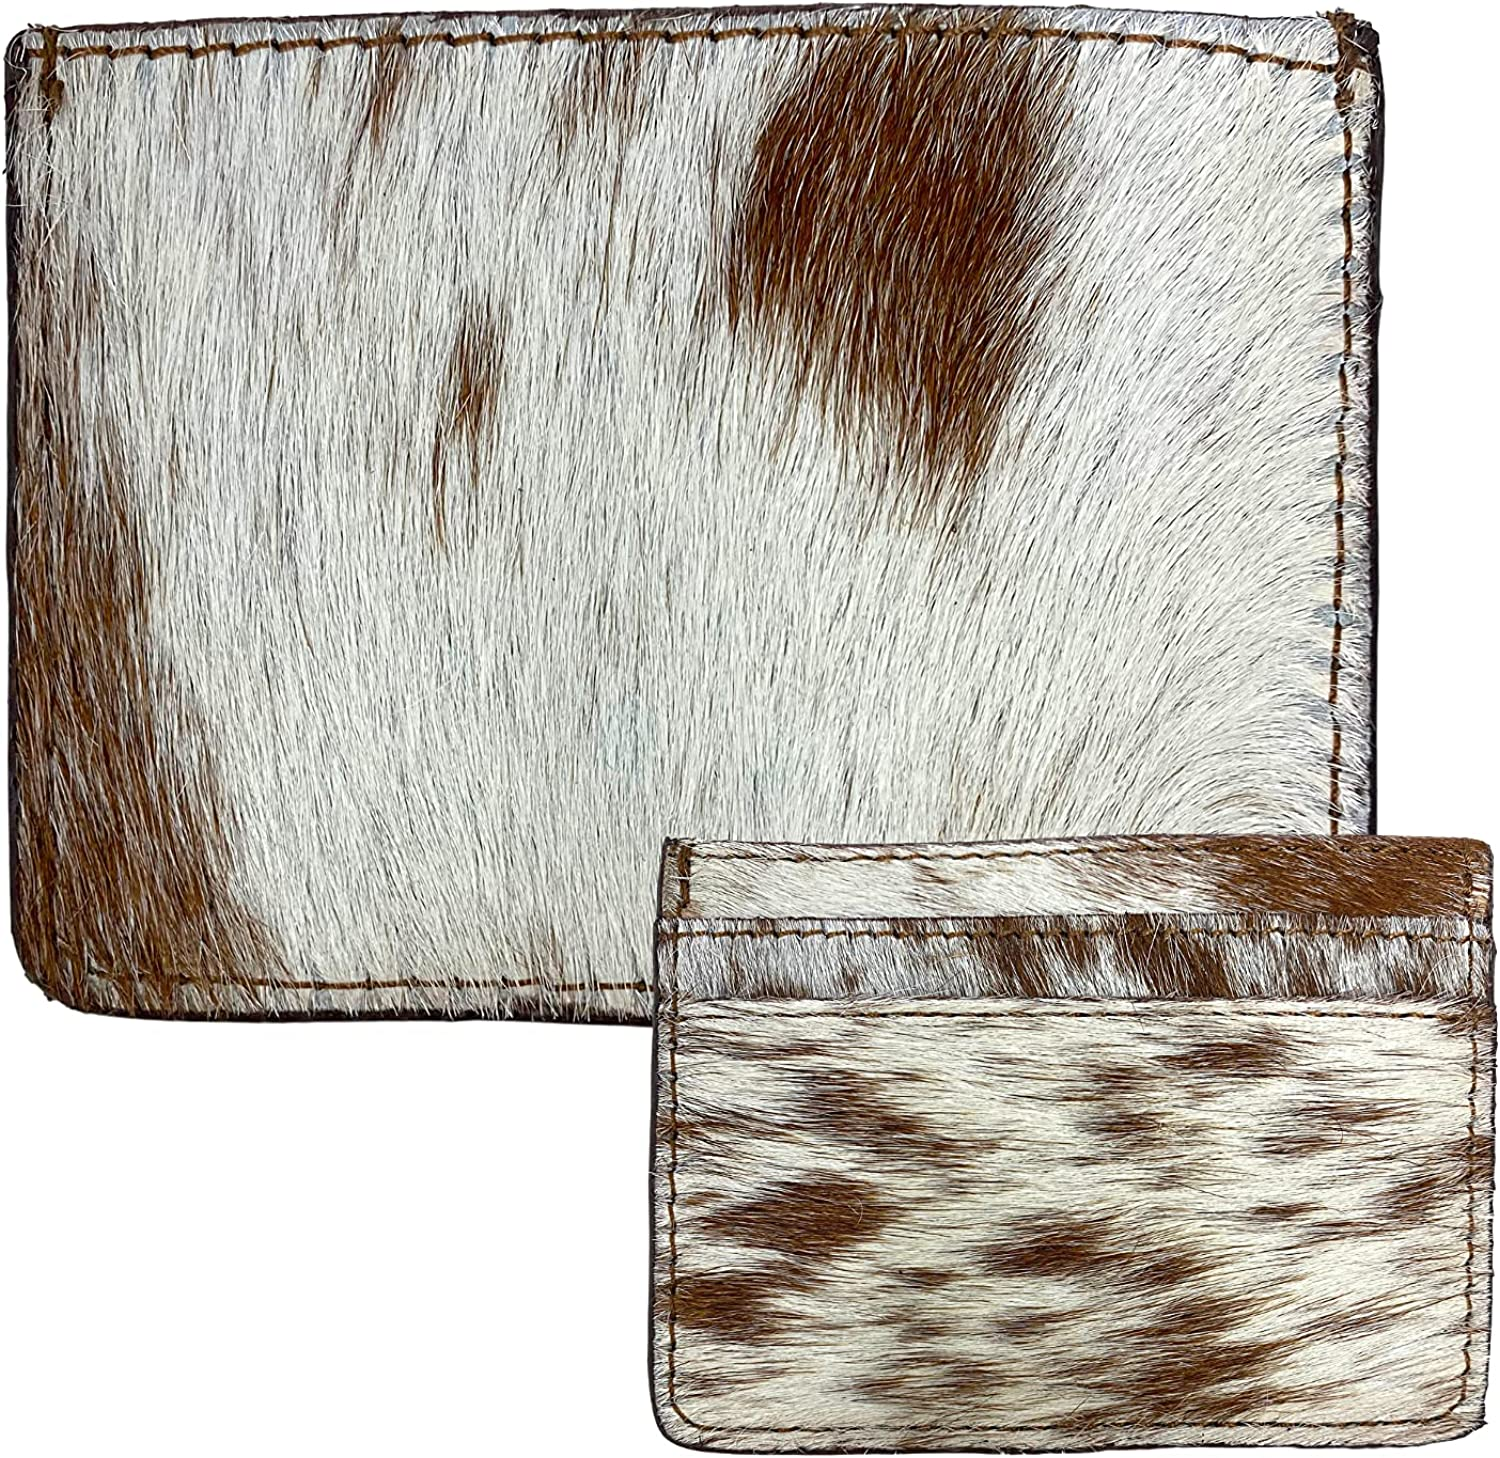 Faux Fur Multi Credit Card Holder for Men and Women, Minimalist Holders for Cards and Money, Cute Small Wallets for Purse, 3 x 4 Inches